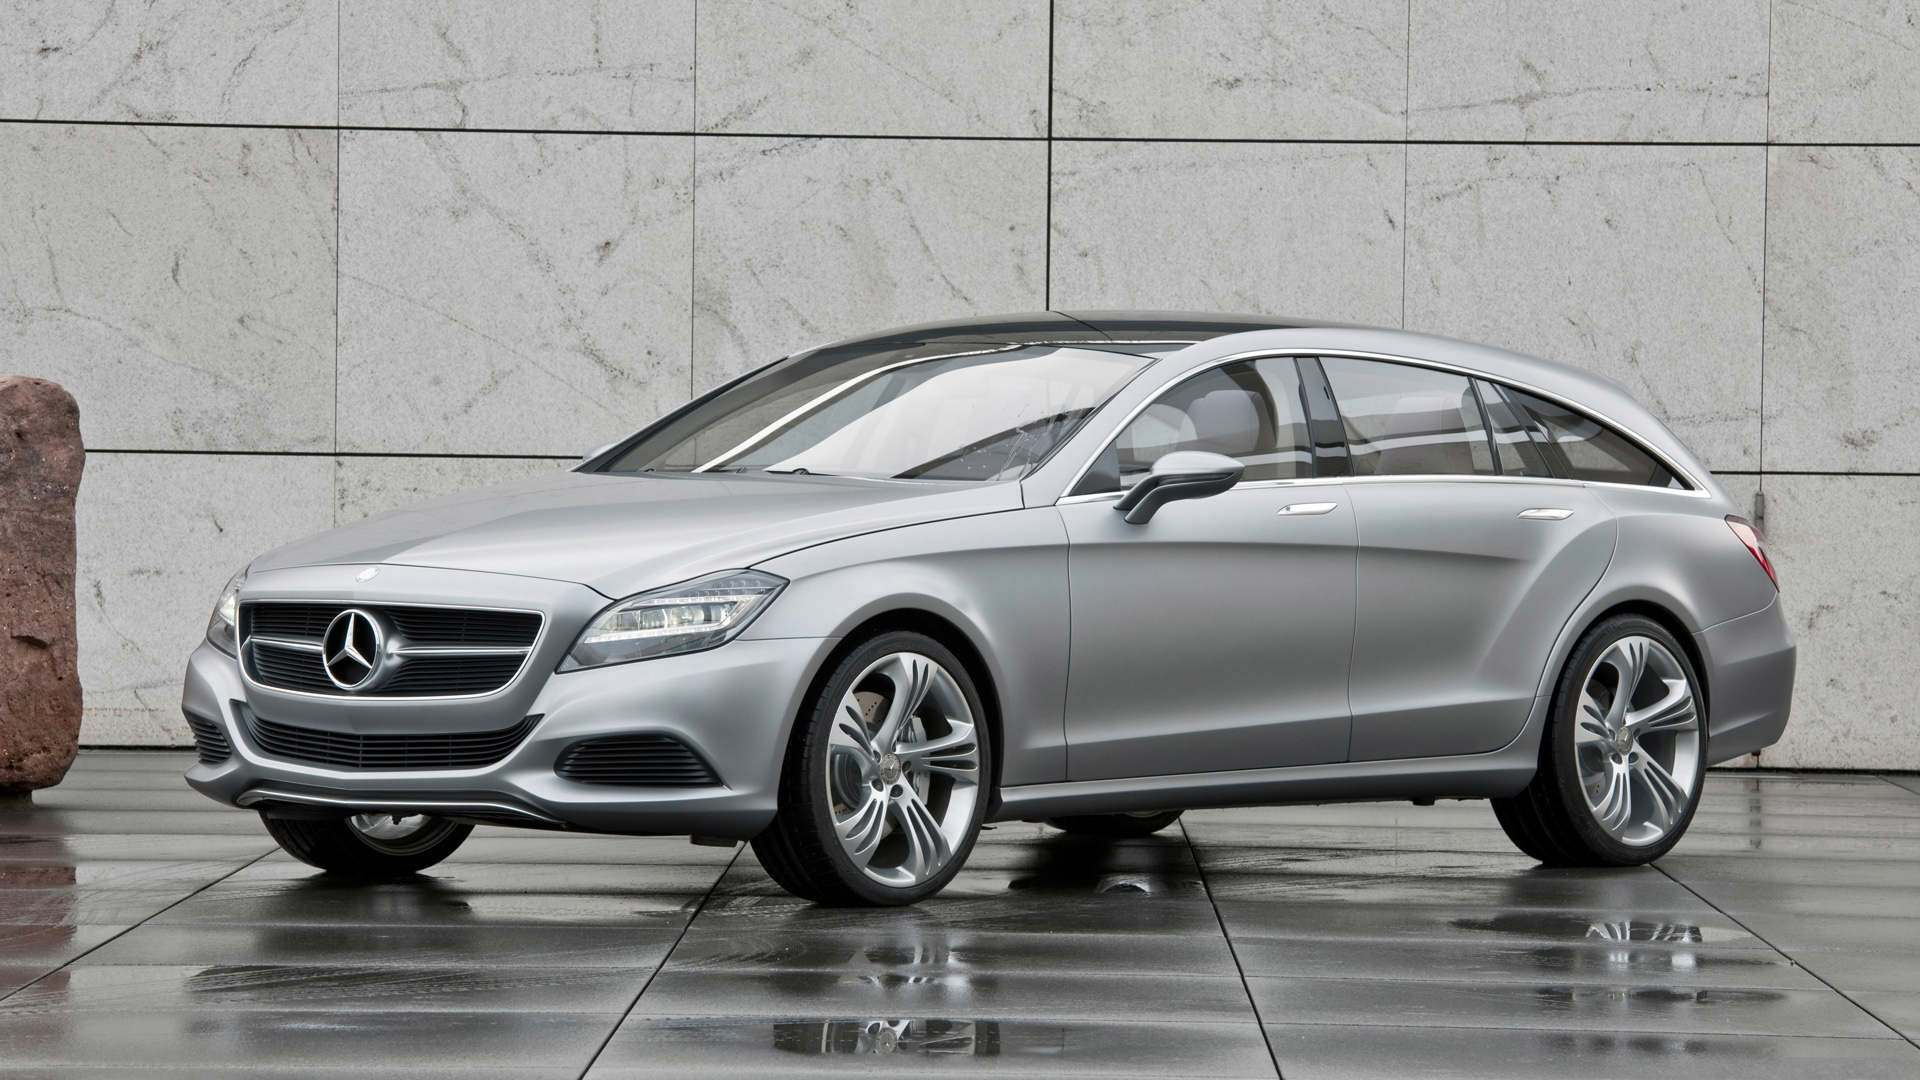 Mercedes benz cars hd wallpapers for Mercedes benz cars